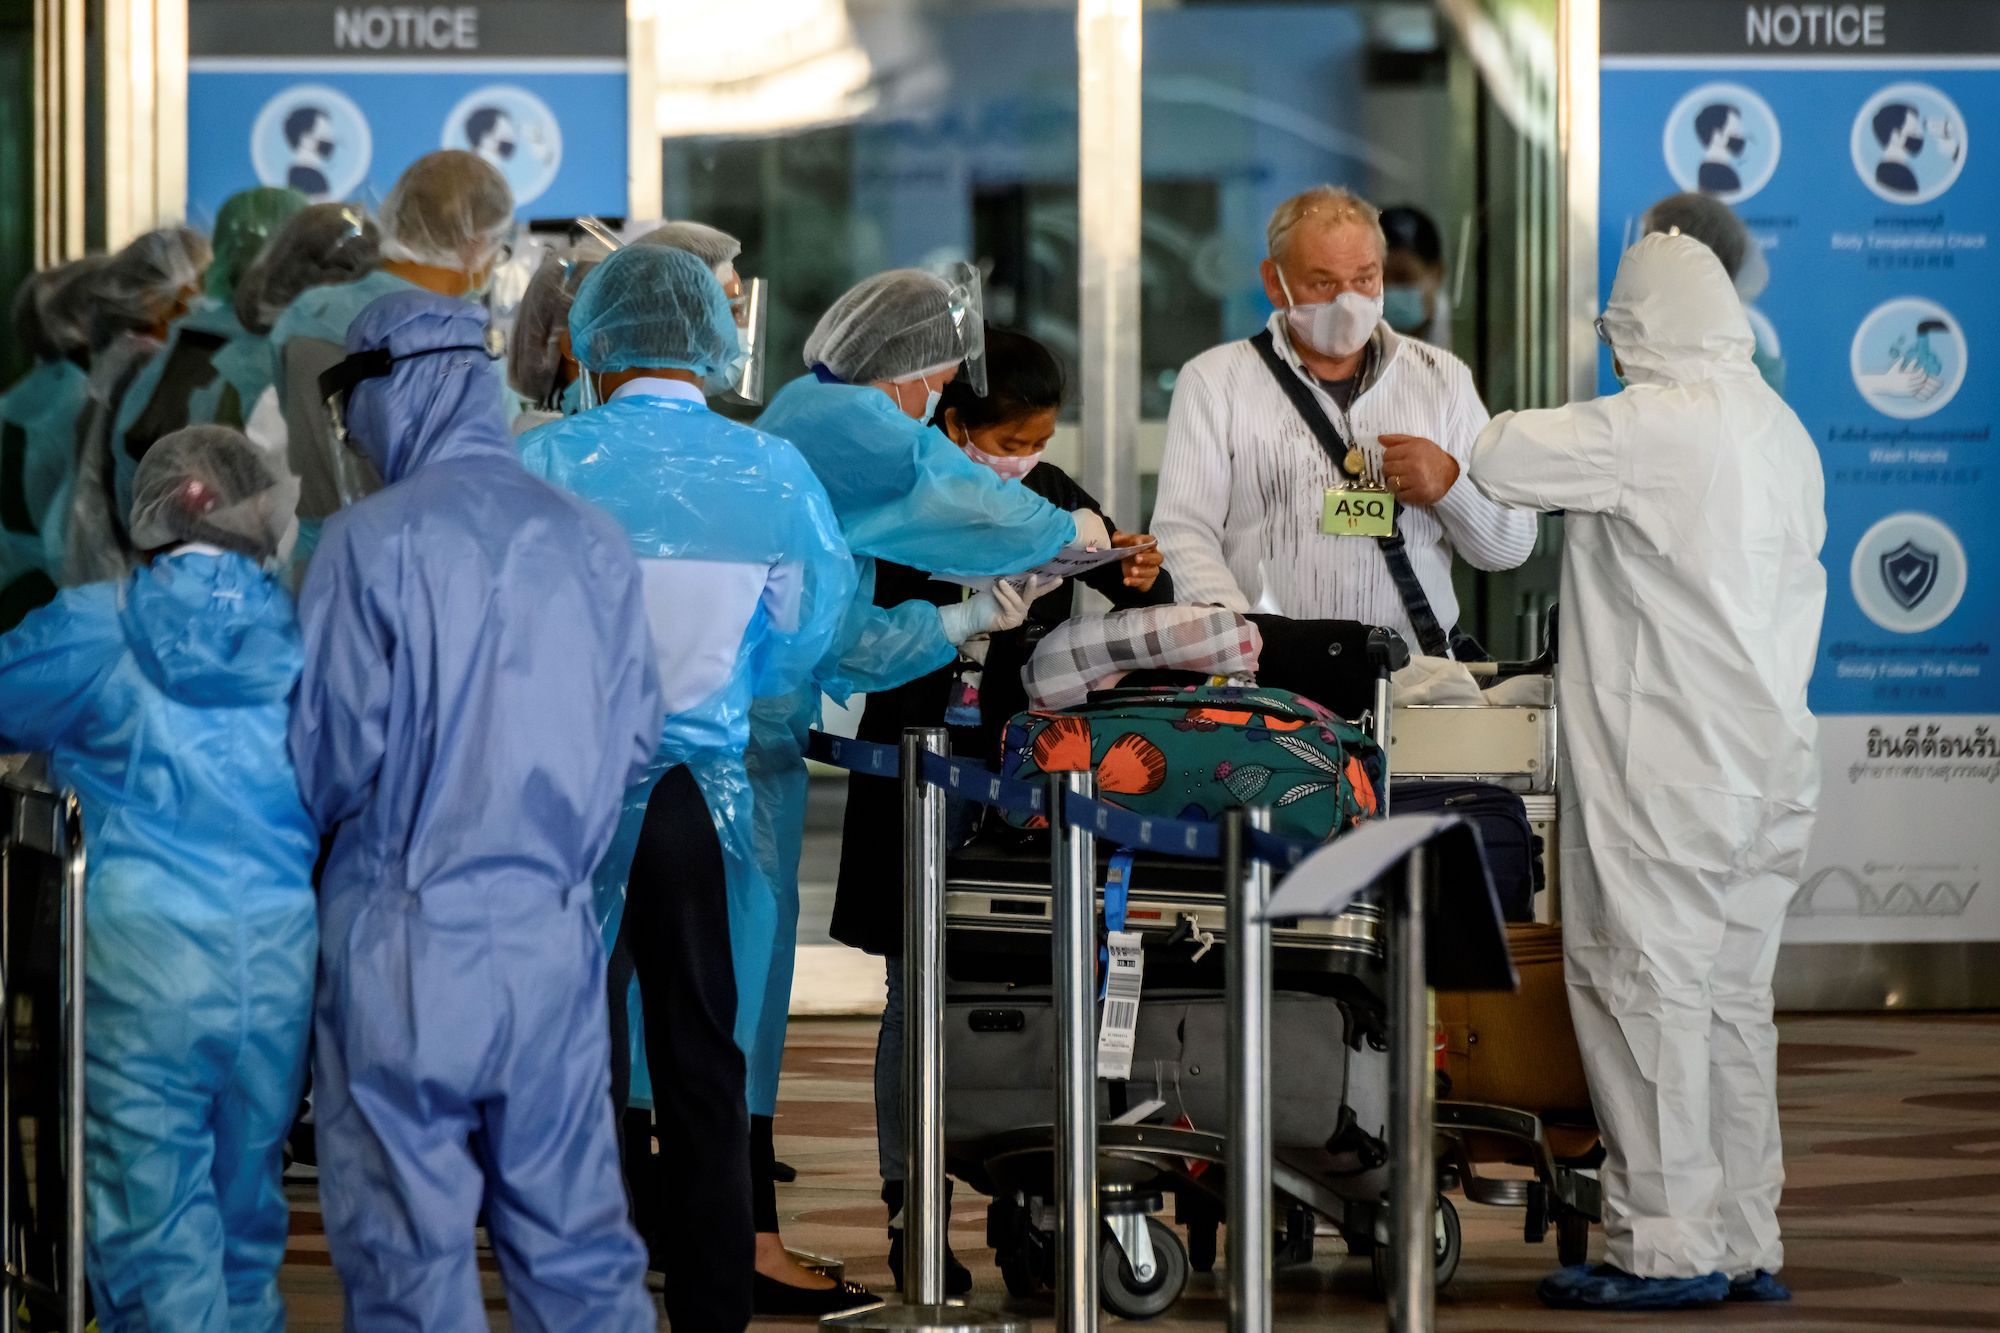 Employees in personal protective equipment at Bangkok's Suvarnabhumi Airport direct arriving international passengers to hotels for compulsory 14-day quarantines on November 16. The country has kept its COVID-19 case numbers low throughout the pandemic, but a cluster linked to Tachileik, Shan State, has Thai health authorities concerned. (AFP)